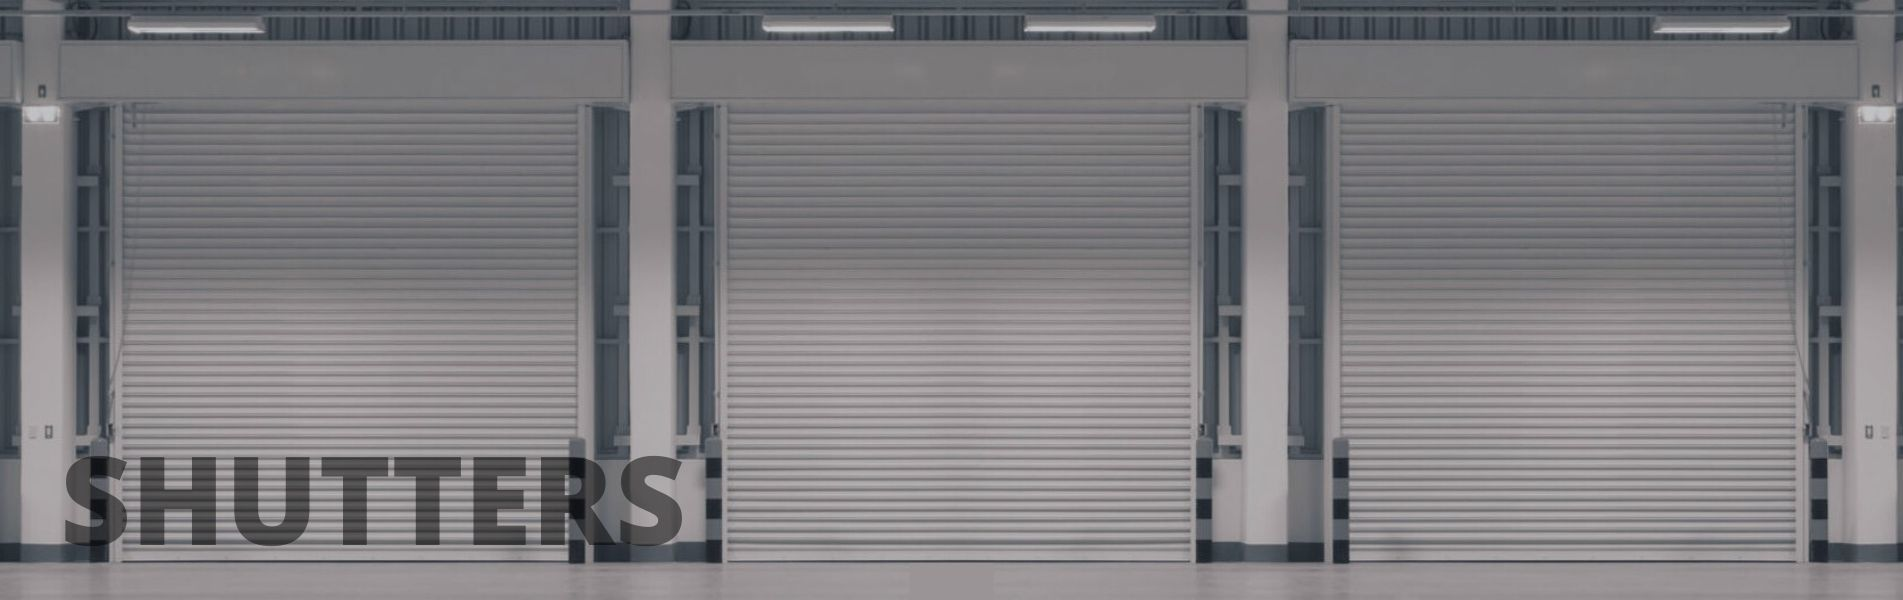 3 closed industrial shutters